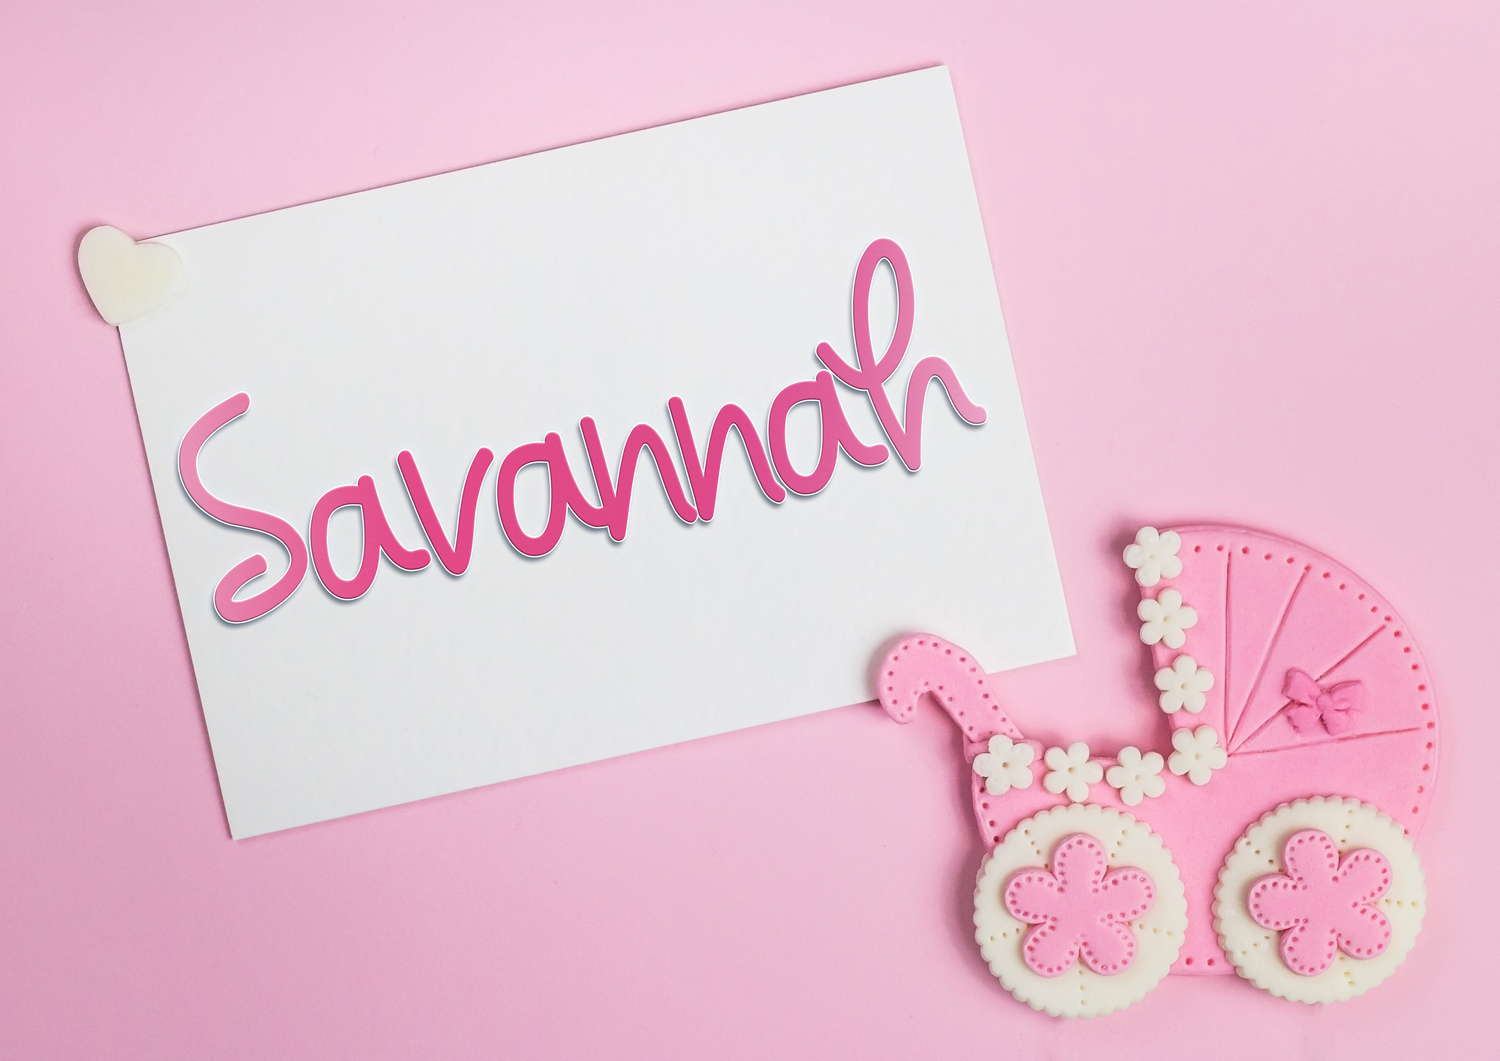 Savannah Baby Name